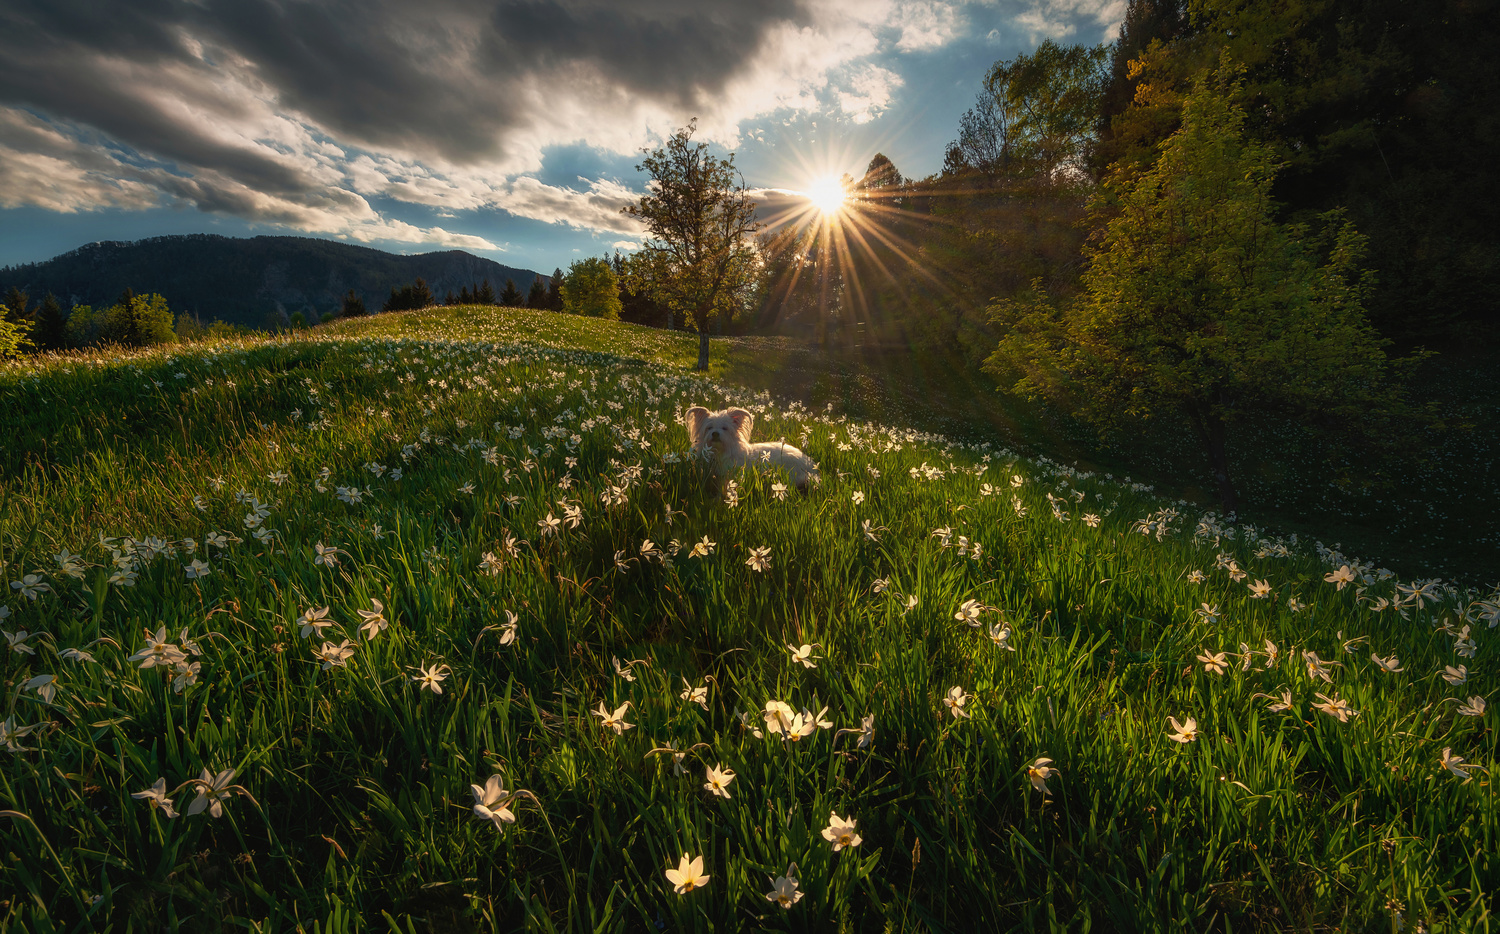 Among the daffodils by Ales Krivec